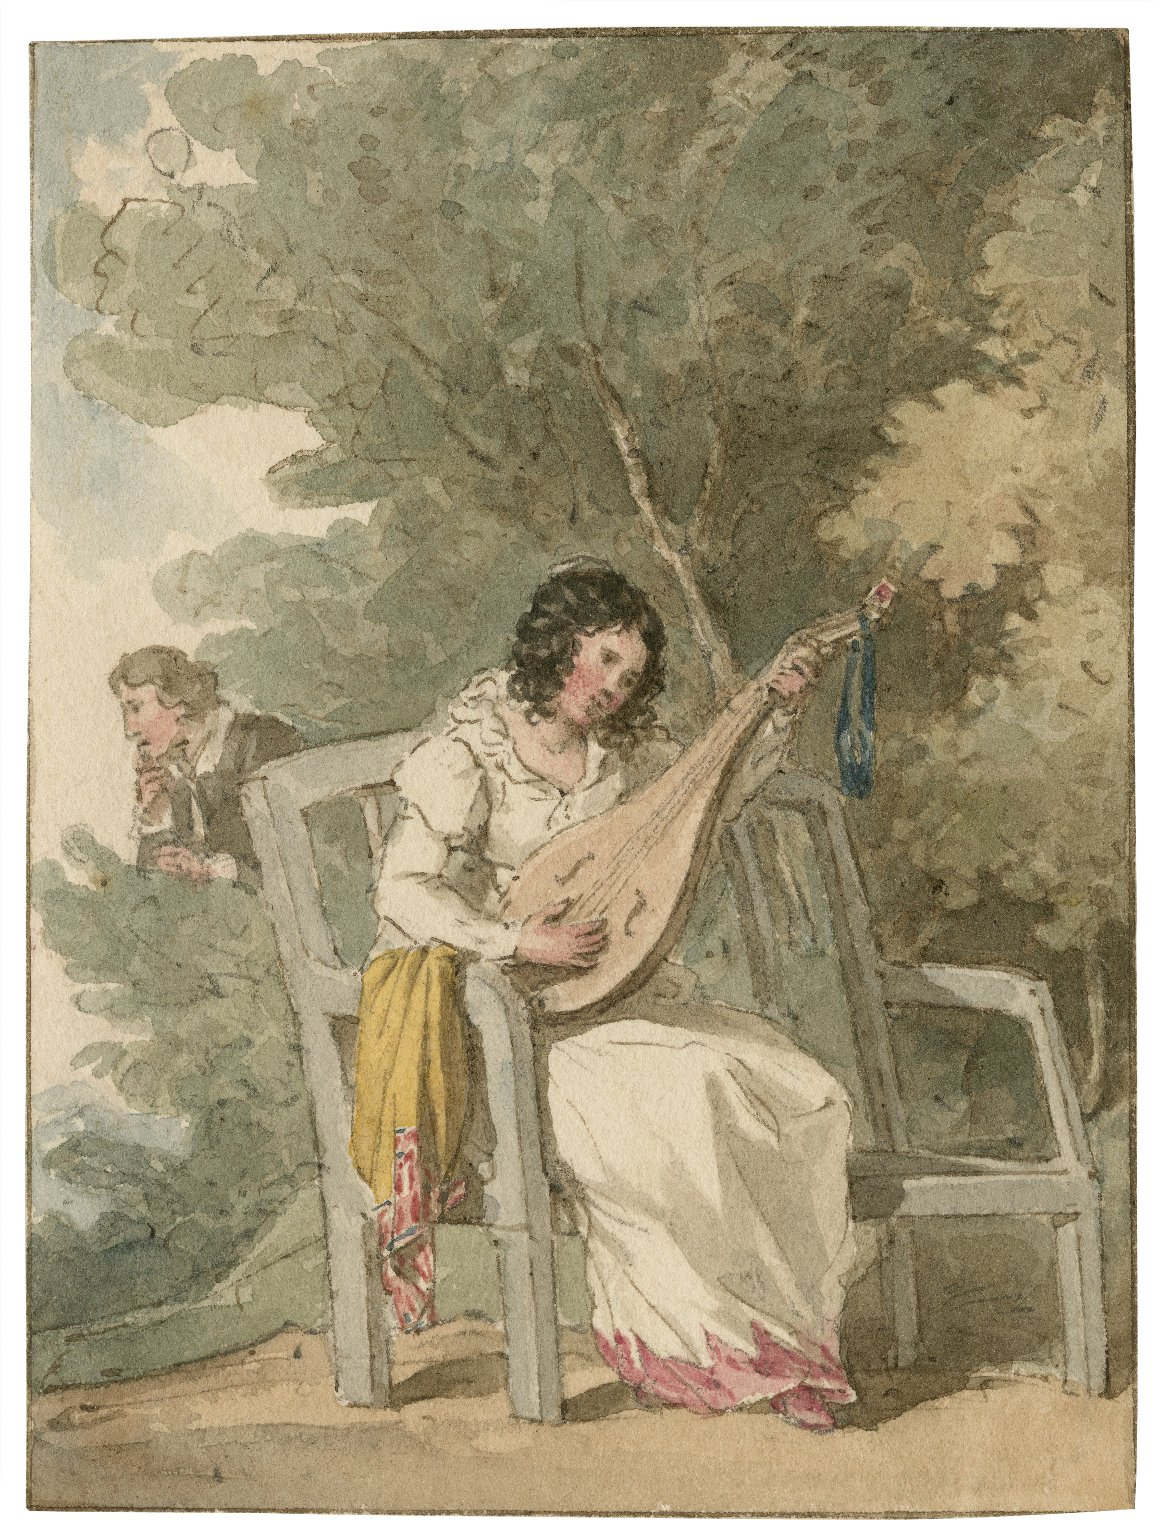 [Much Ado About Nothing] [graphic] / [John Augustus Atkinson].